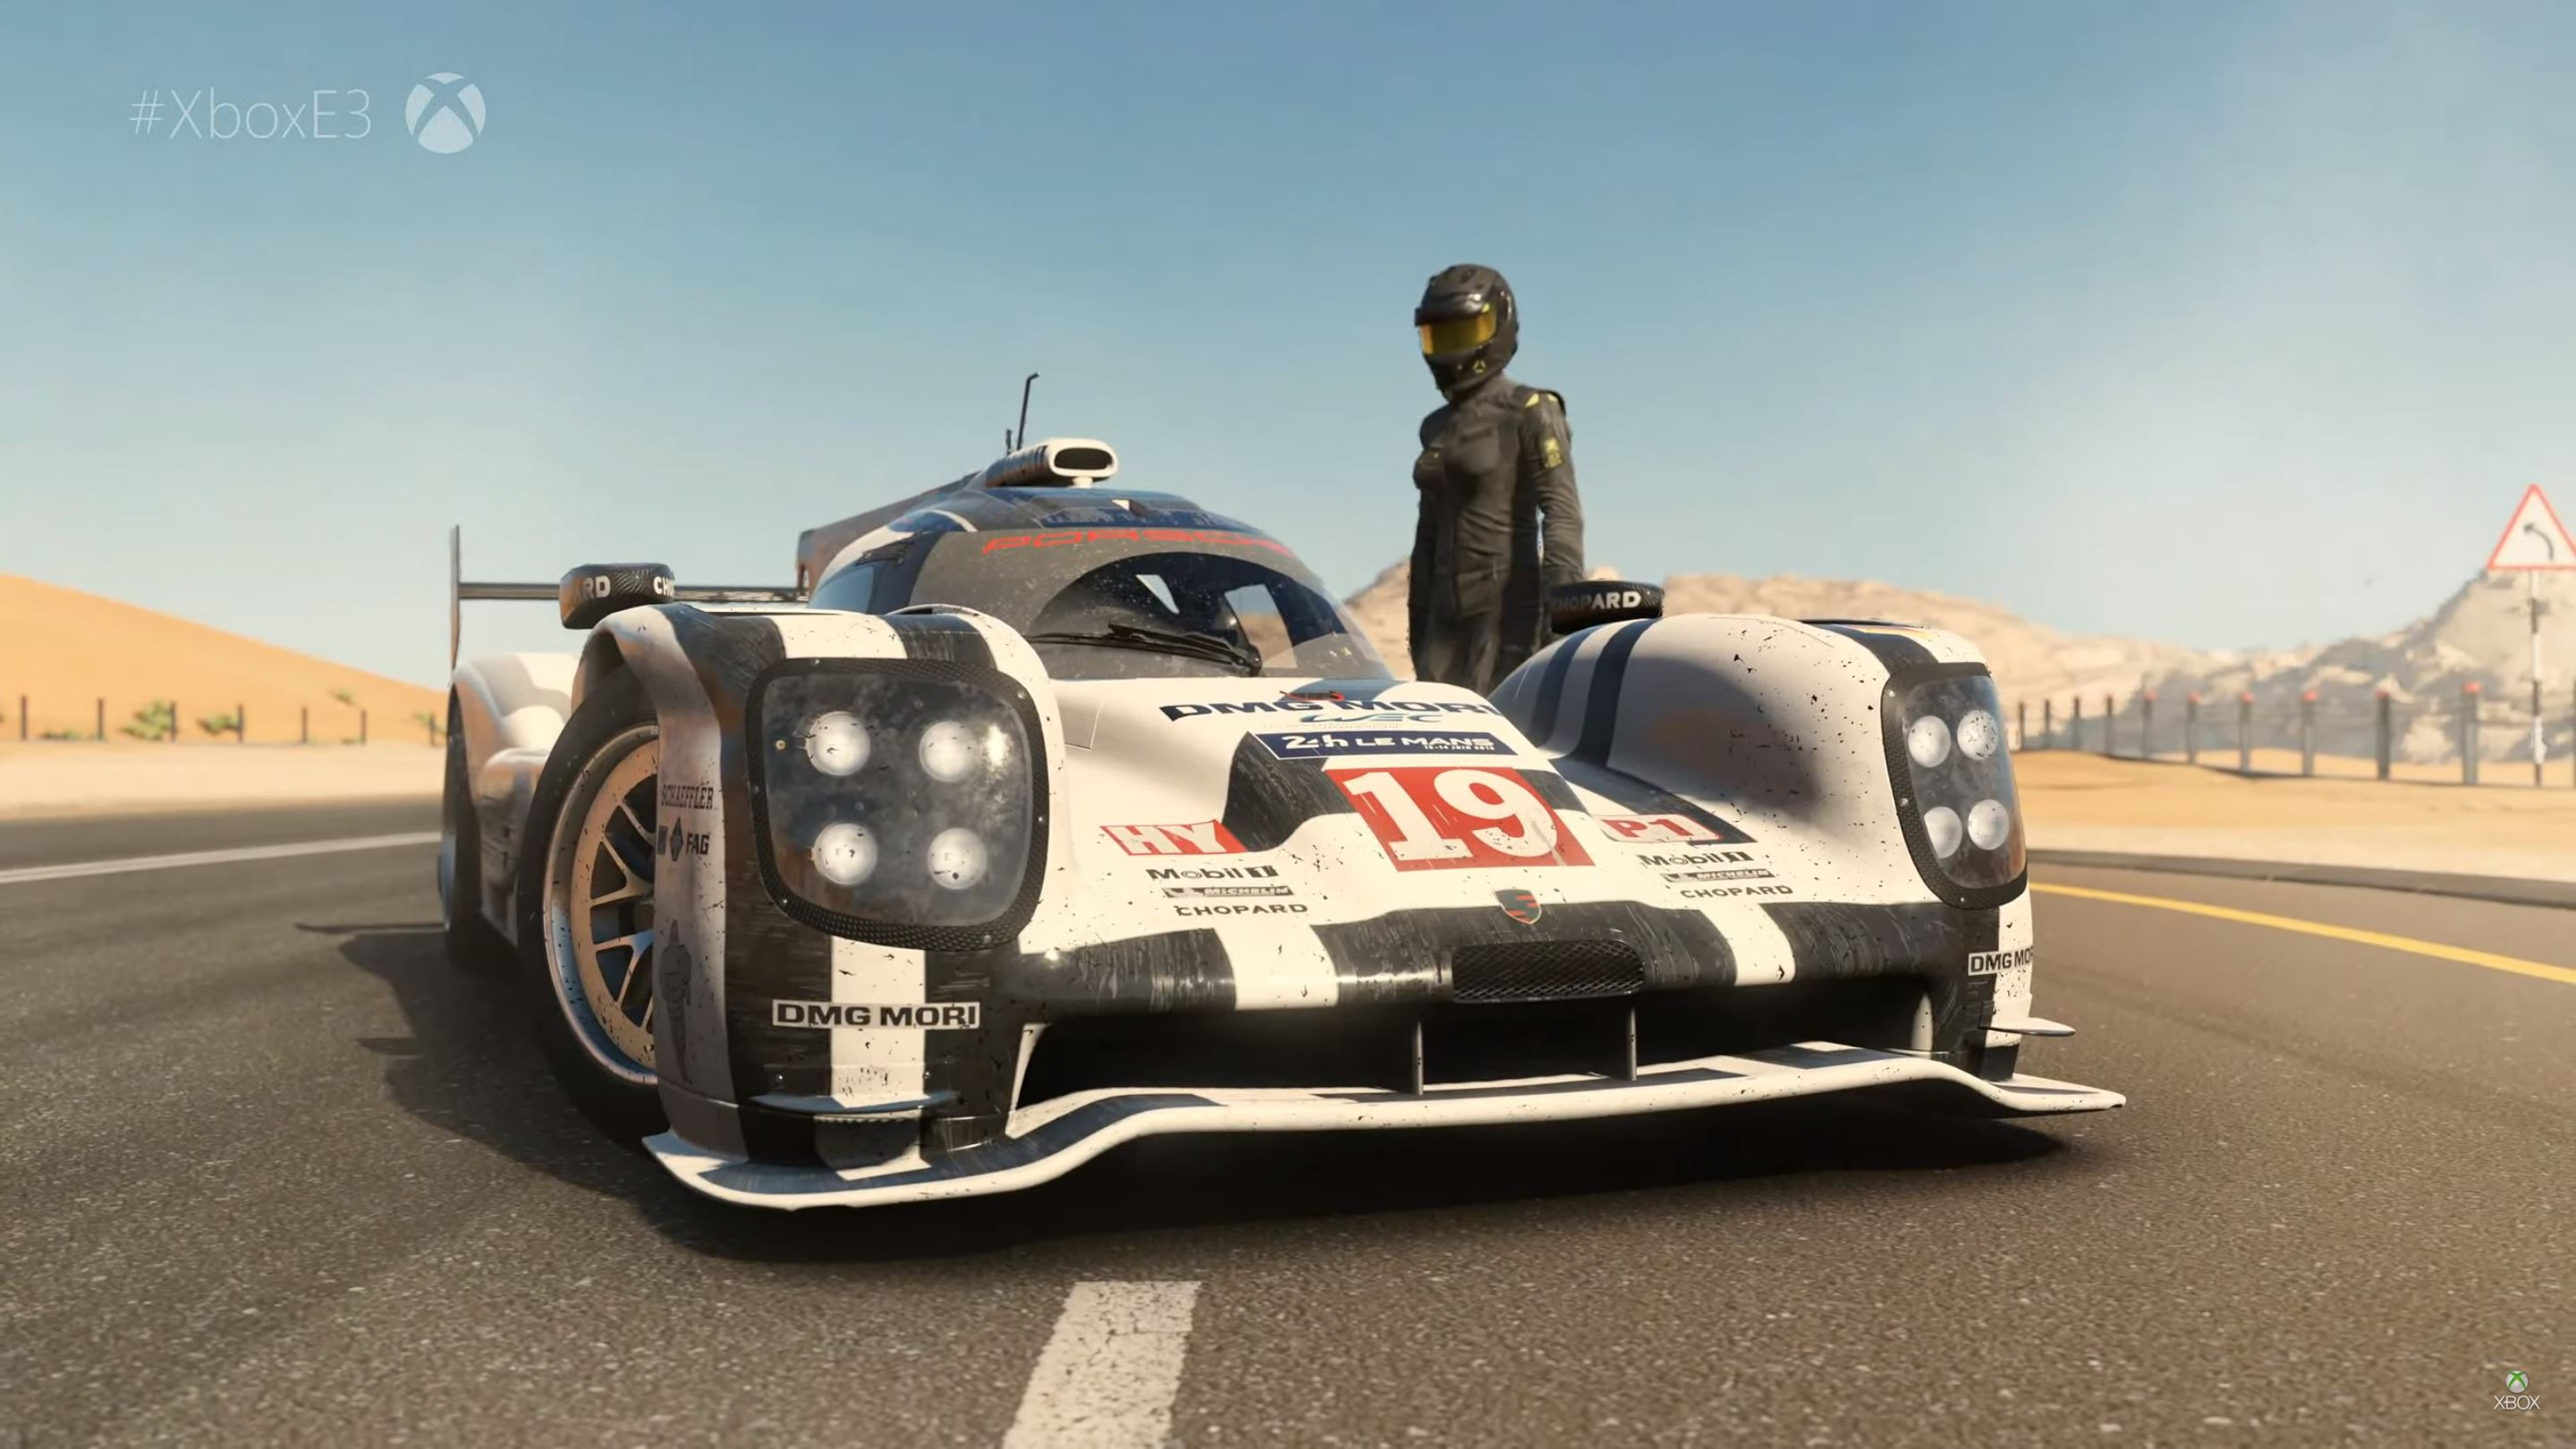 Forza Motorsport 7 is set for October on Xbox One and Windows 10 screenshot